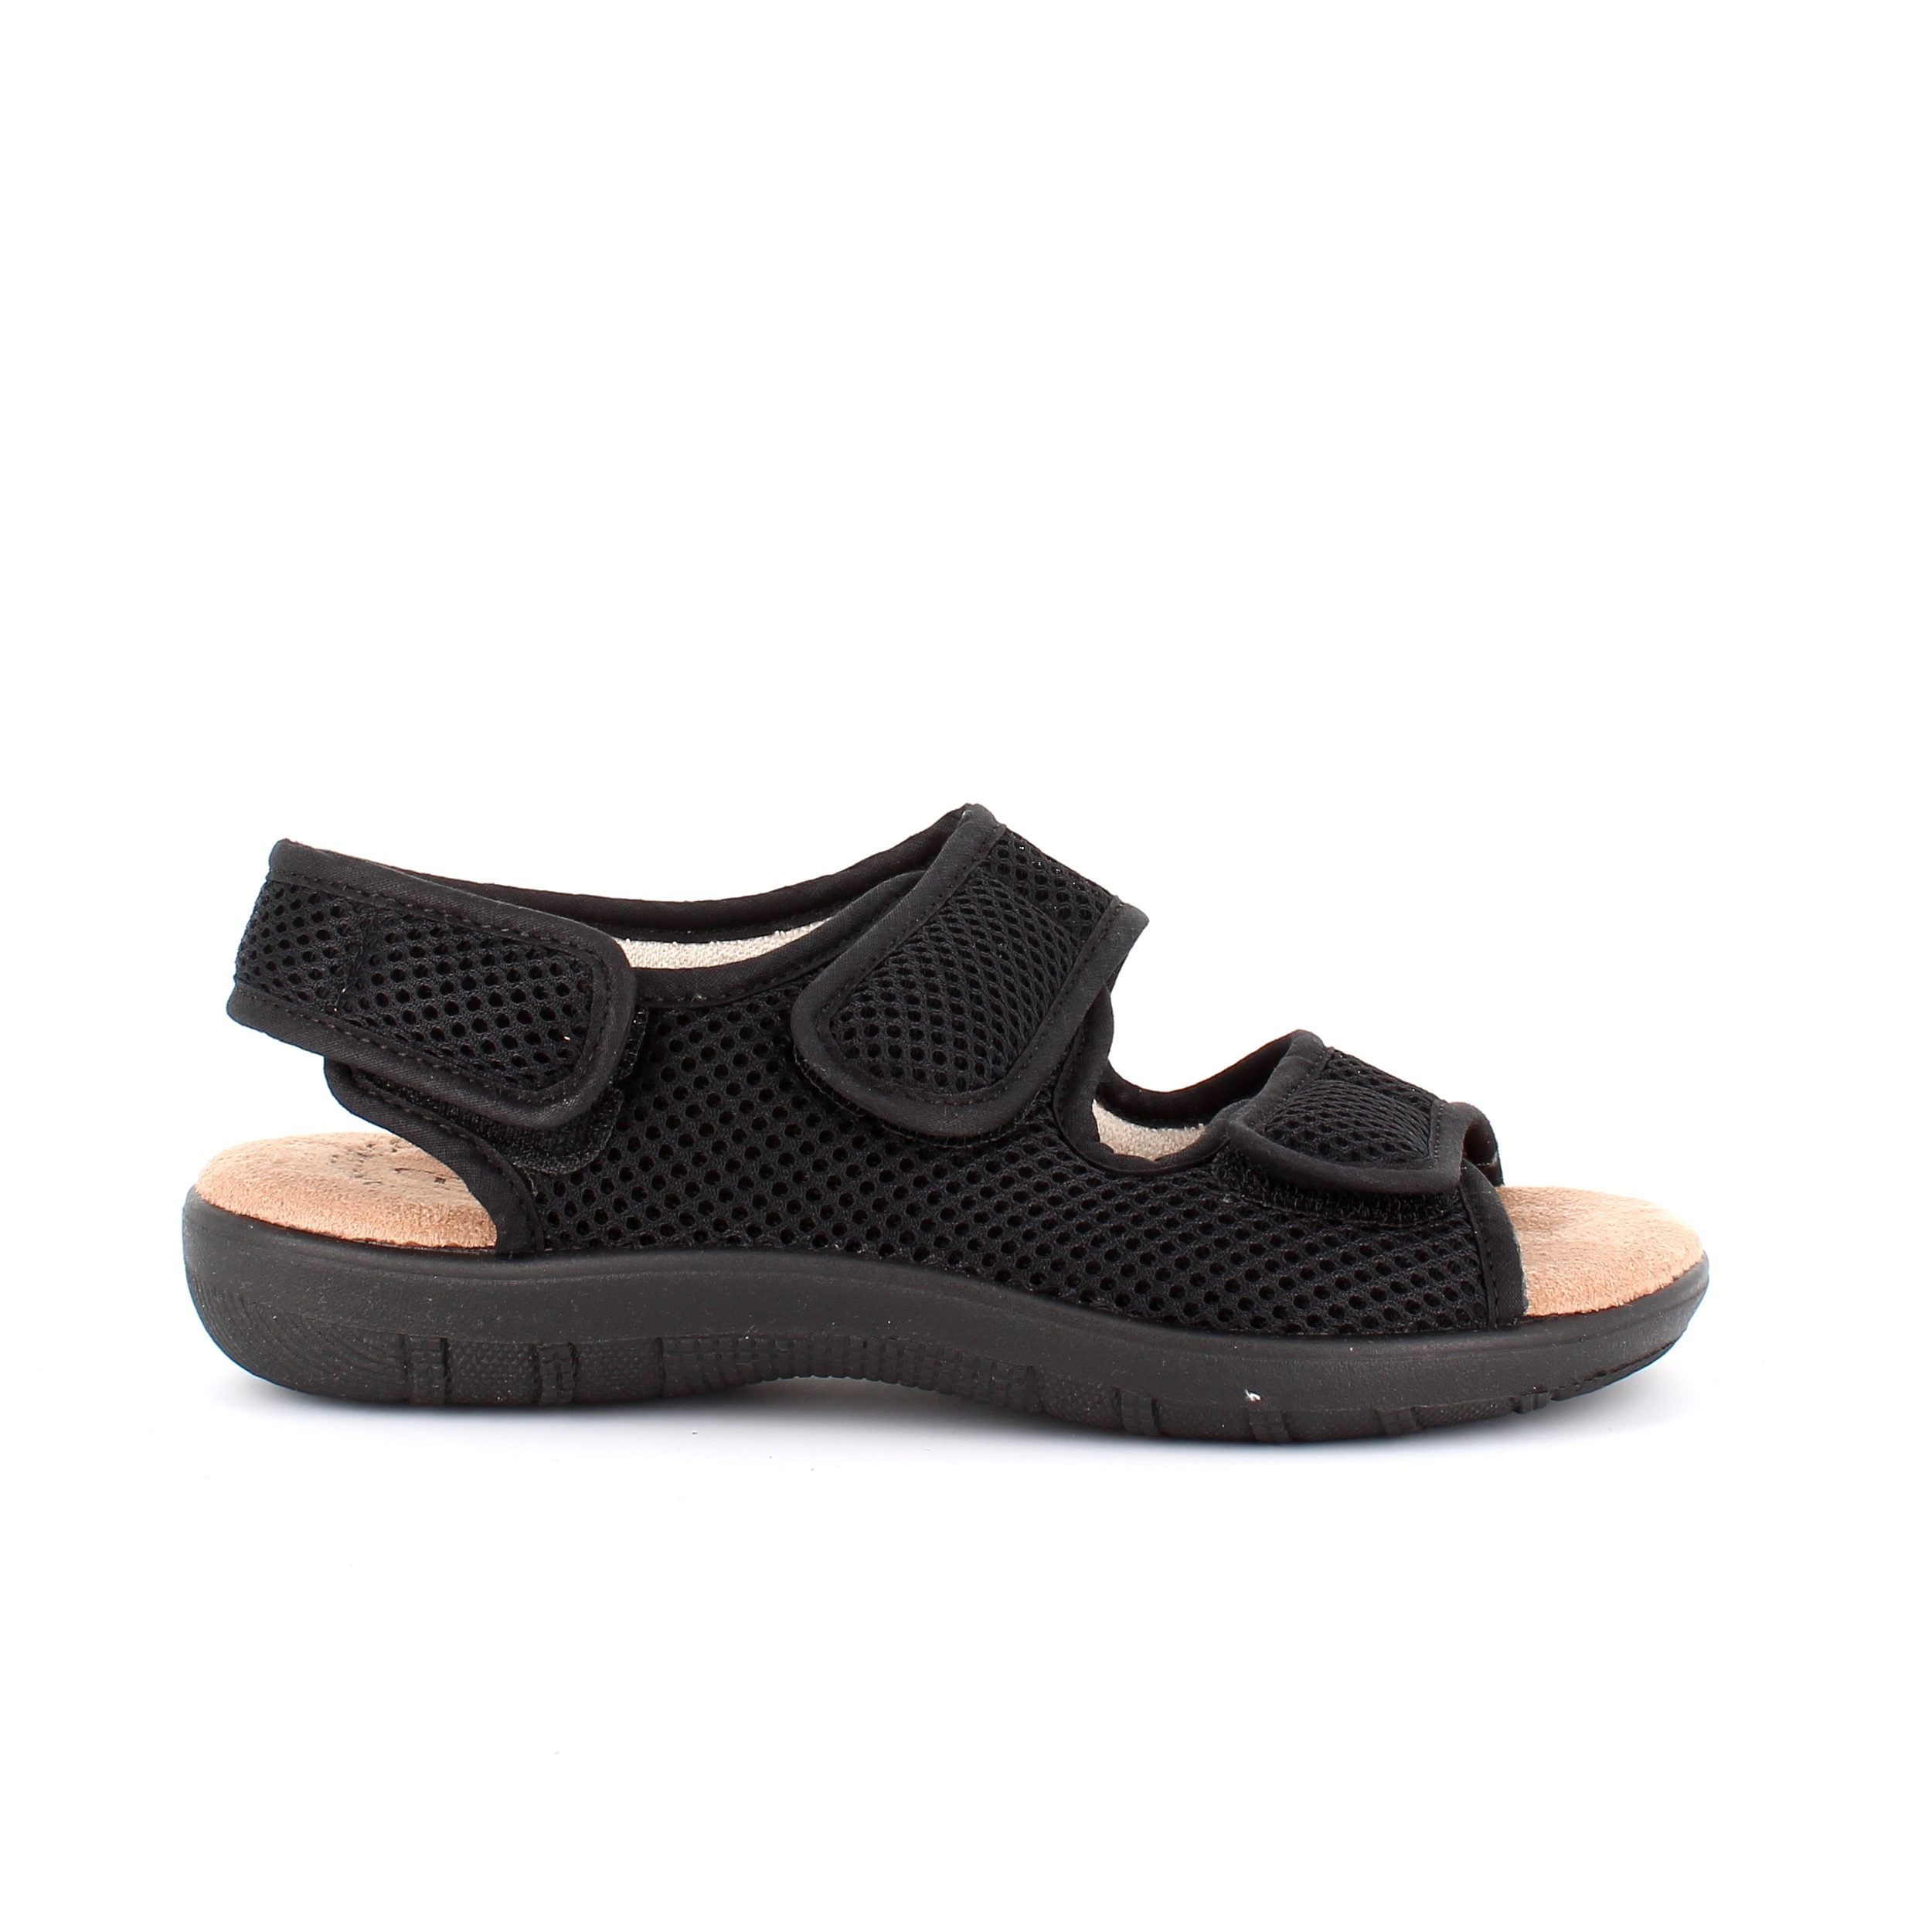 Image of   Anatomisk soft sandal - 38